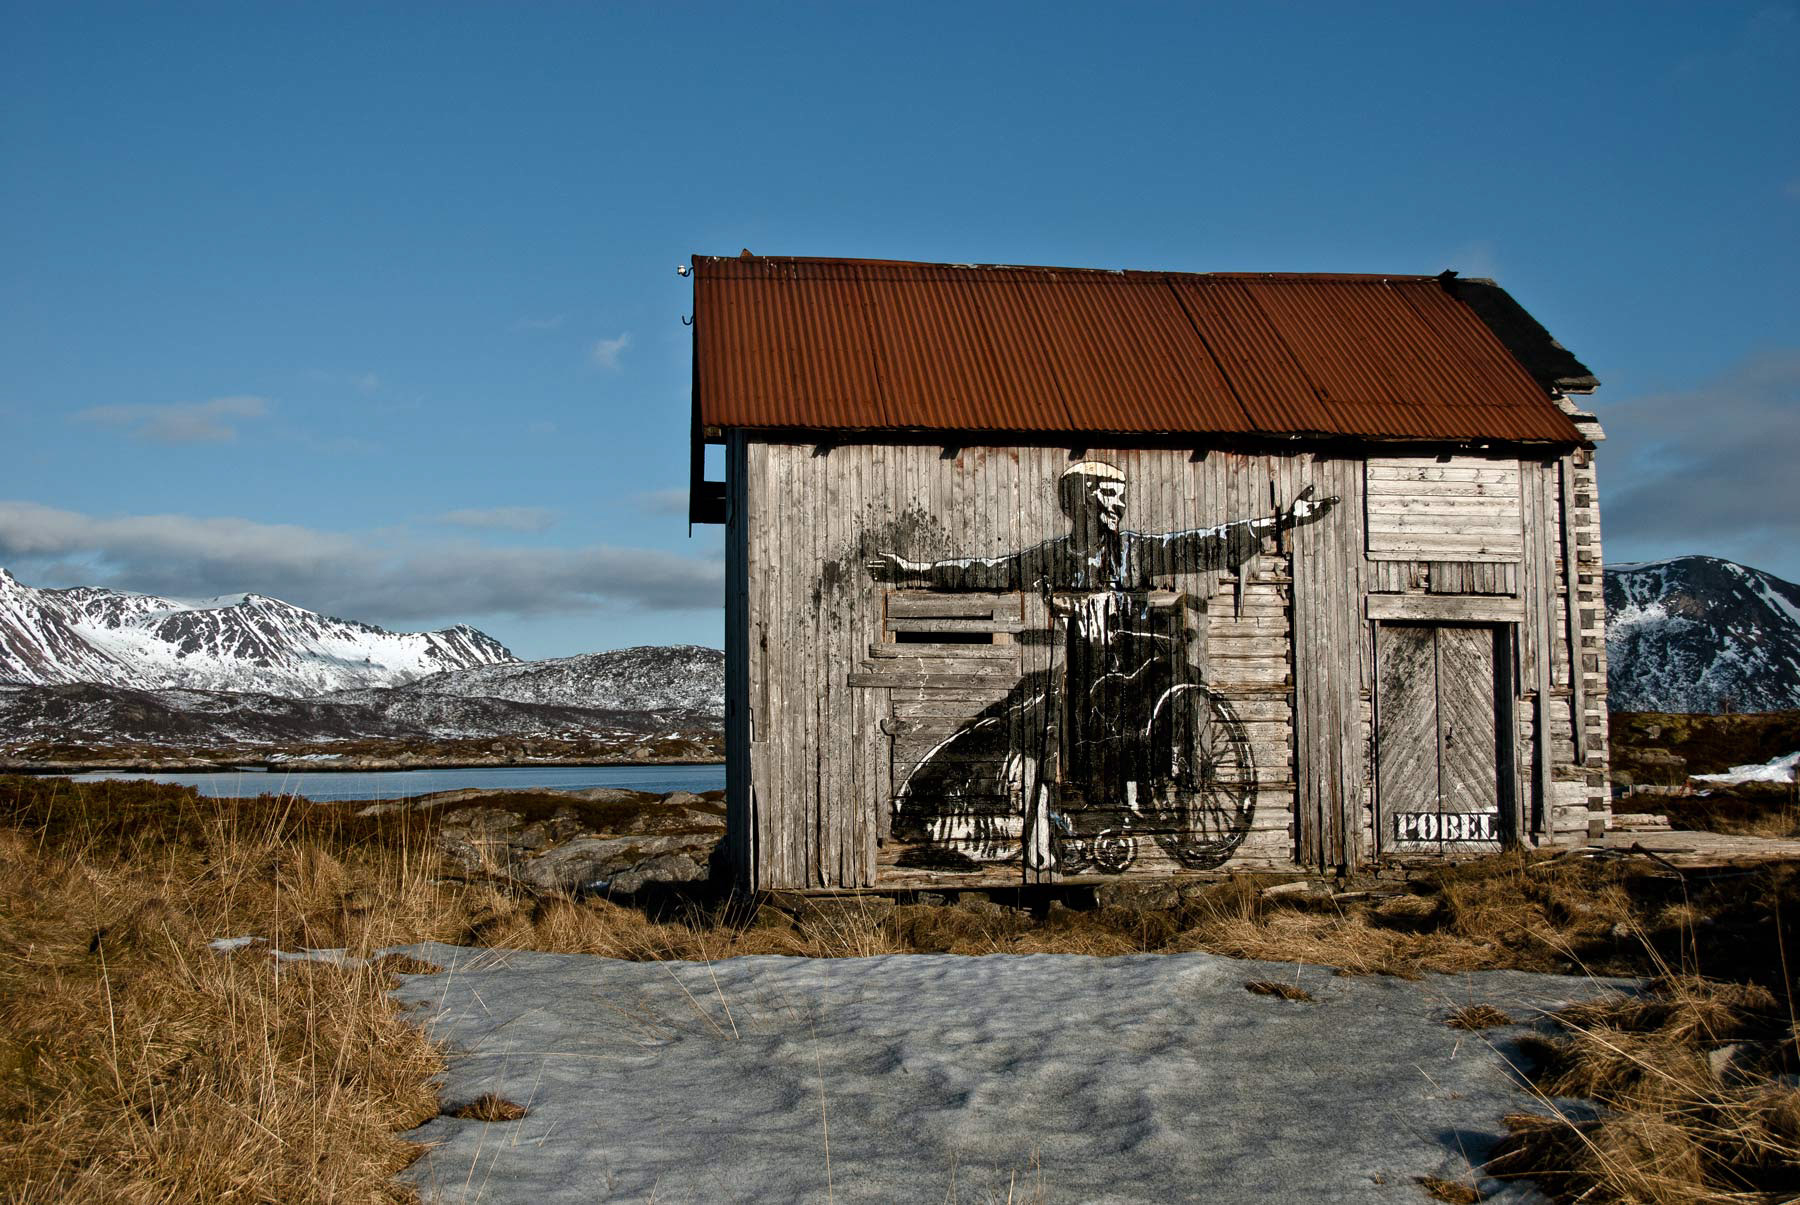 Urban Street Art VS Rural Landscapes ThorNews